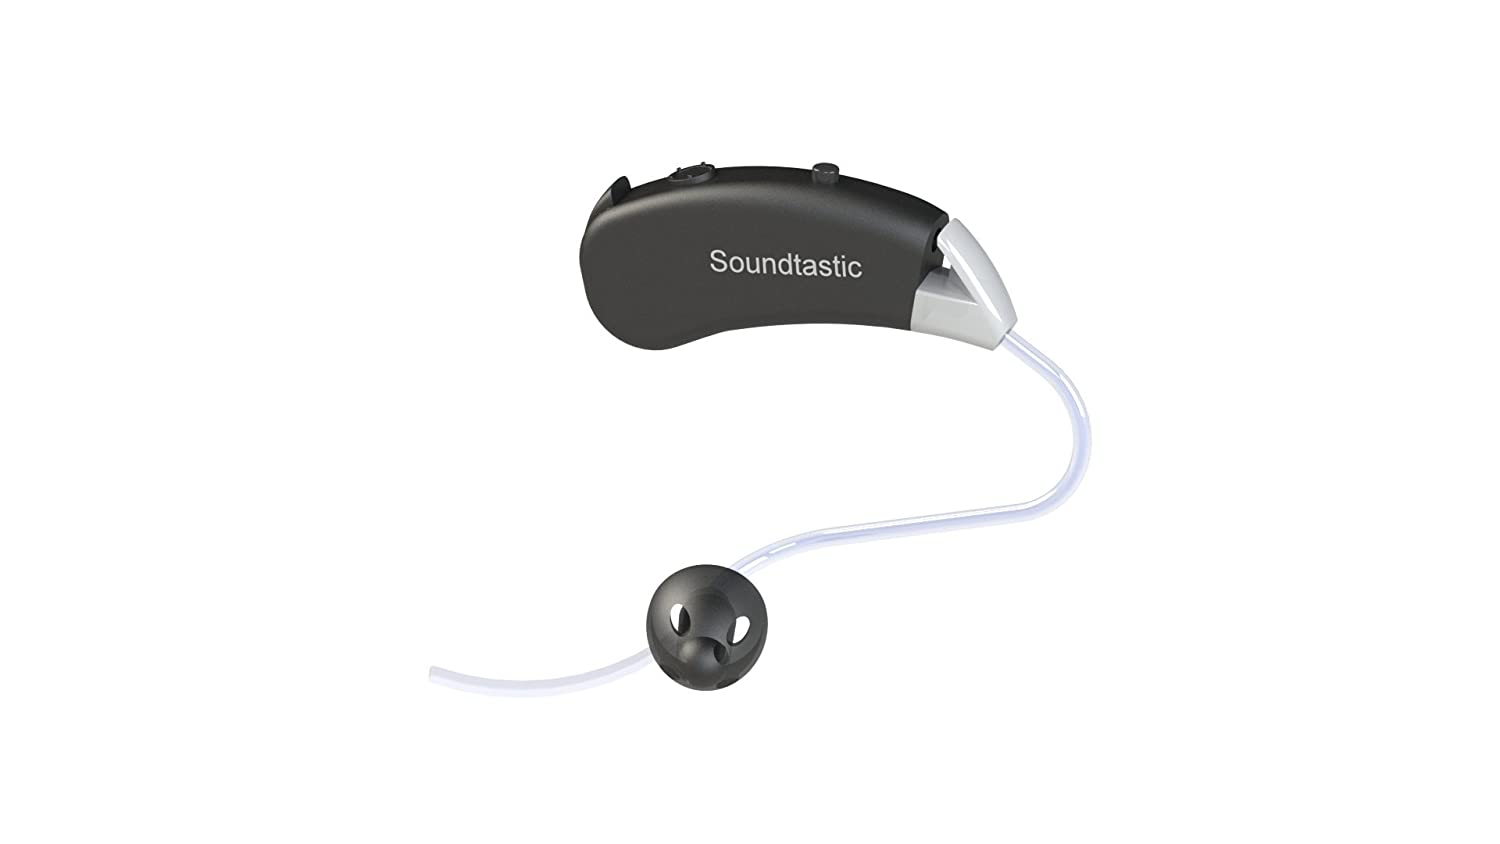 Soundtastic Swan Hearing Amplifier Device Small In Living Aids Amplifiers Accessories Size Big Boost Sound 10 Channels Of Layered Noise Reduction Free Maintenance Kit